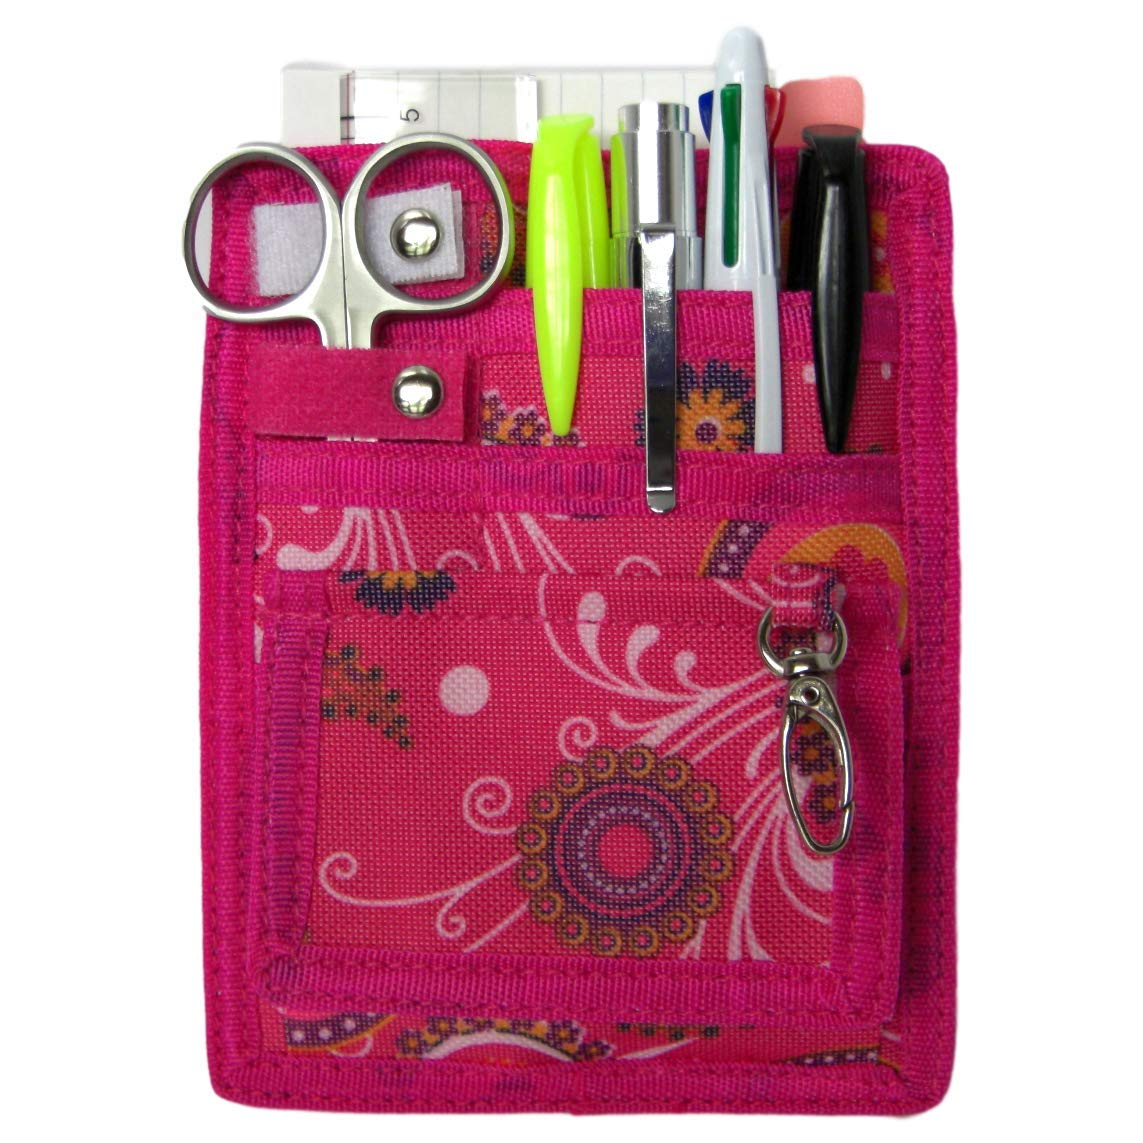 6 Piece Protective Lab Coat Pocket Organizer Kit Has Pretty Pink Paisley Pattern You're Sure to Love! Attractive Yet Durable-Made of Super Strong 600d Denier-Perfect Gift for Nurses, Students & You!